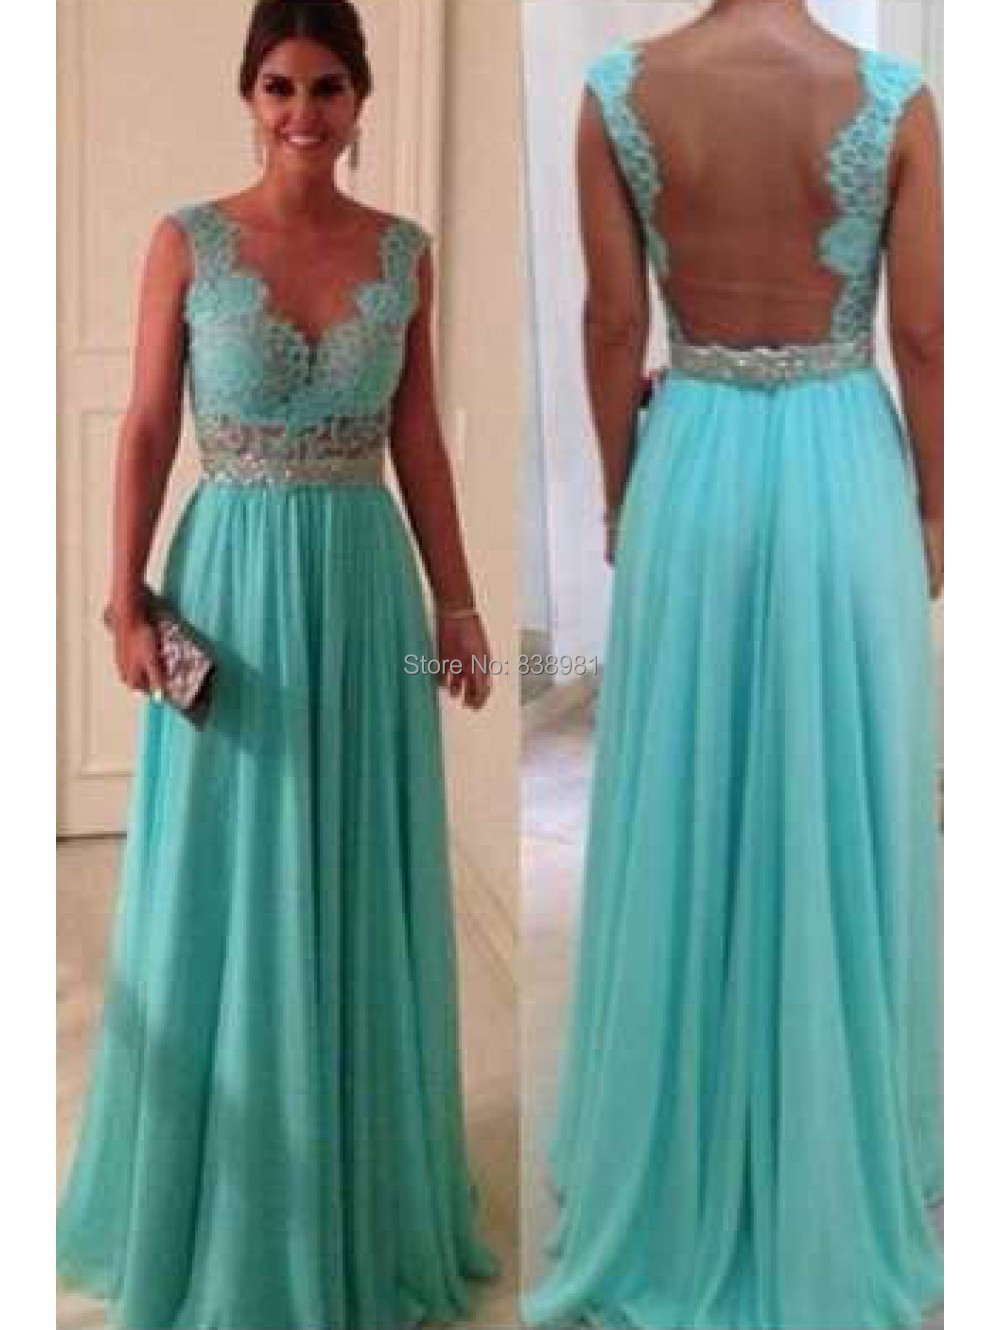 Fancy Sew Prom Dress Photo - Womens Dresses & Gowns Collections ...